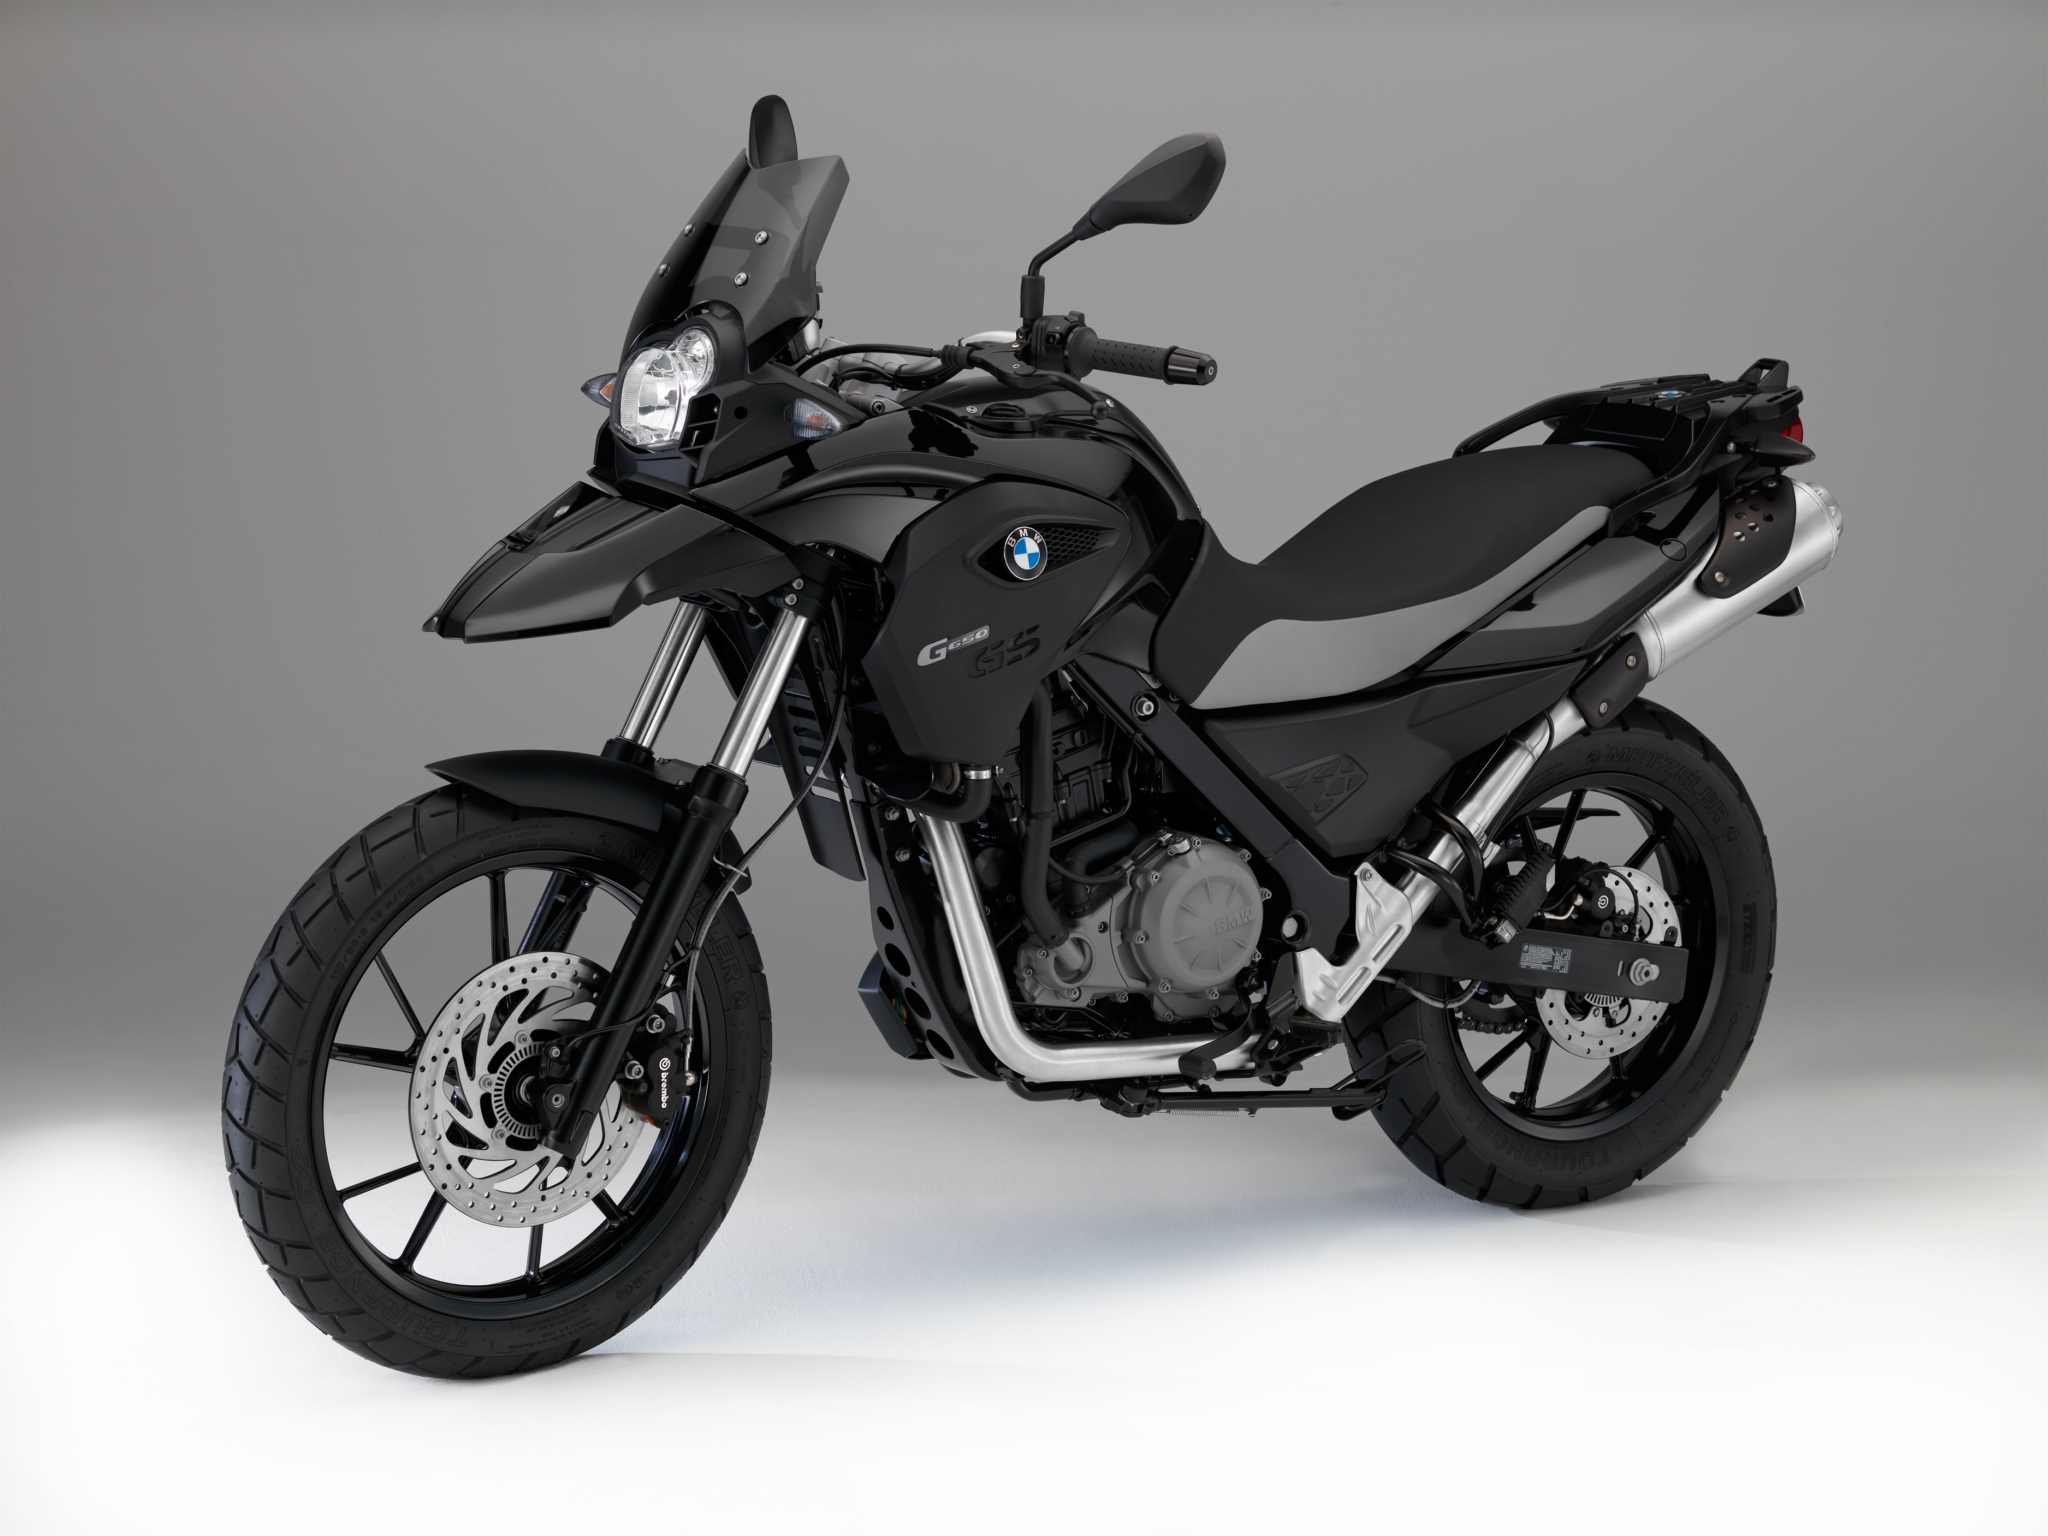 new colors for bmw f800r and g650gs autoevolution. Black Bedroom Furniture Sets. Home Design Ideas